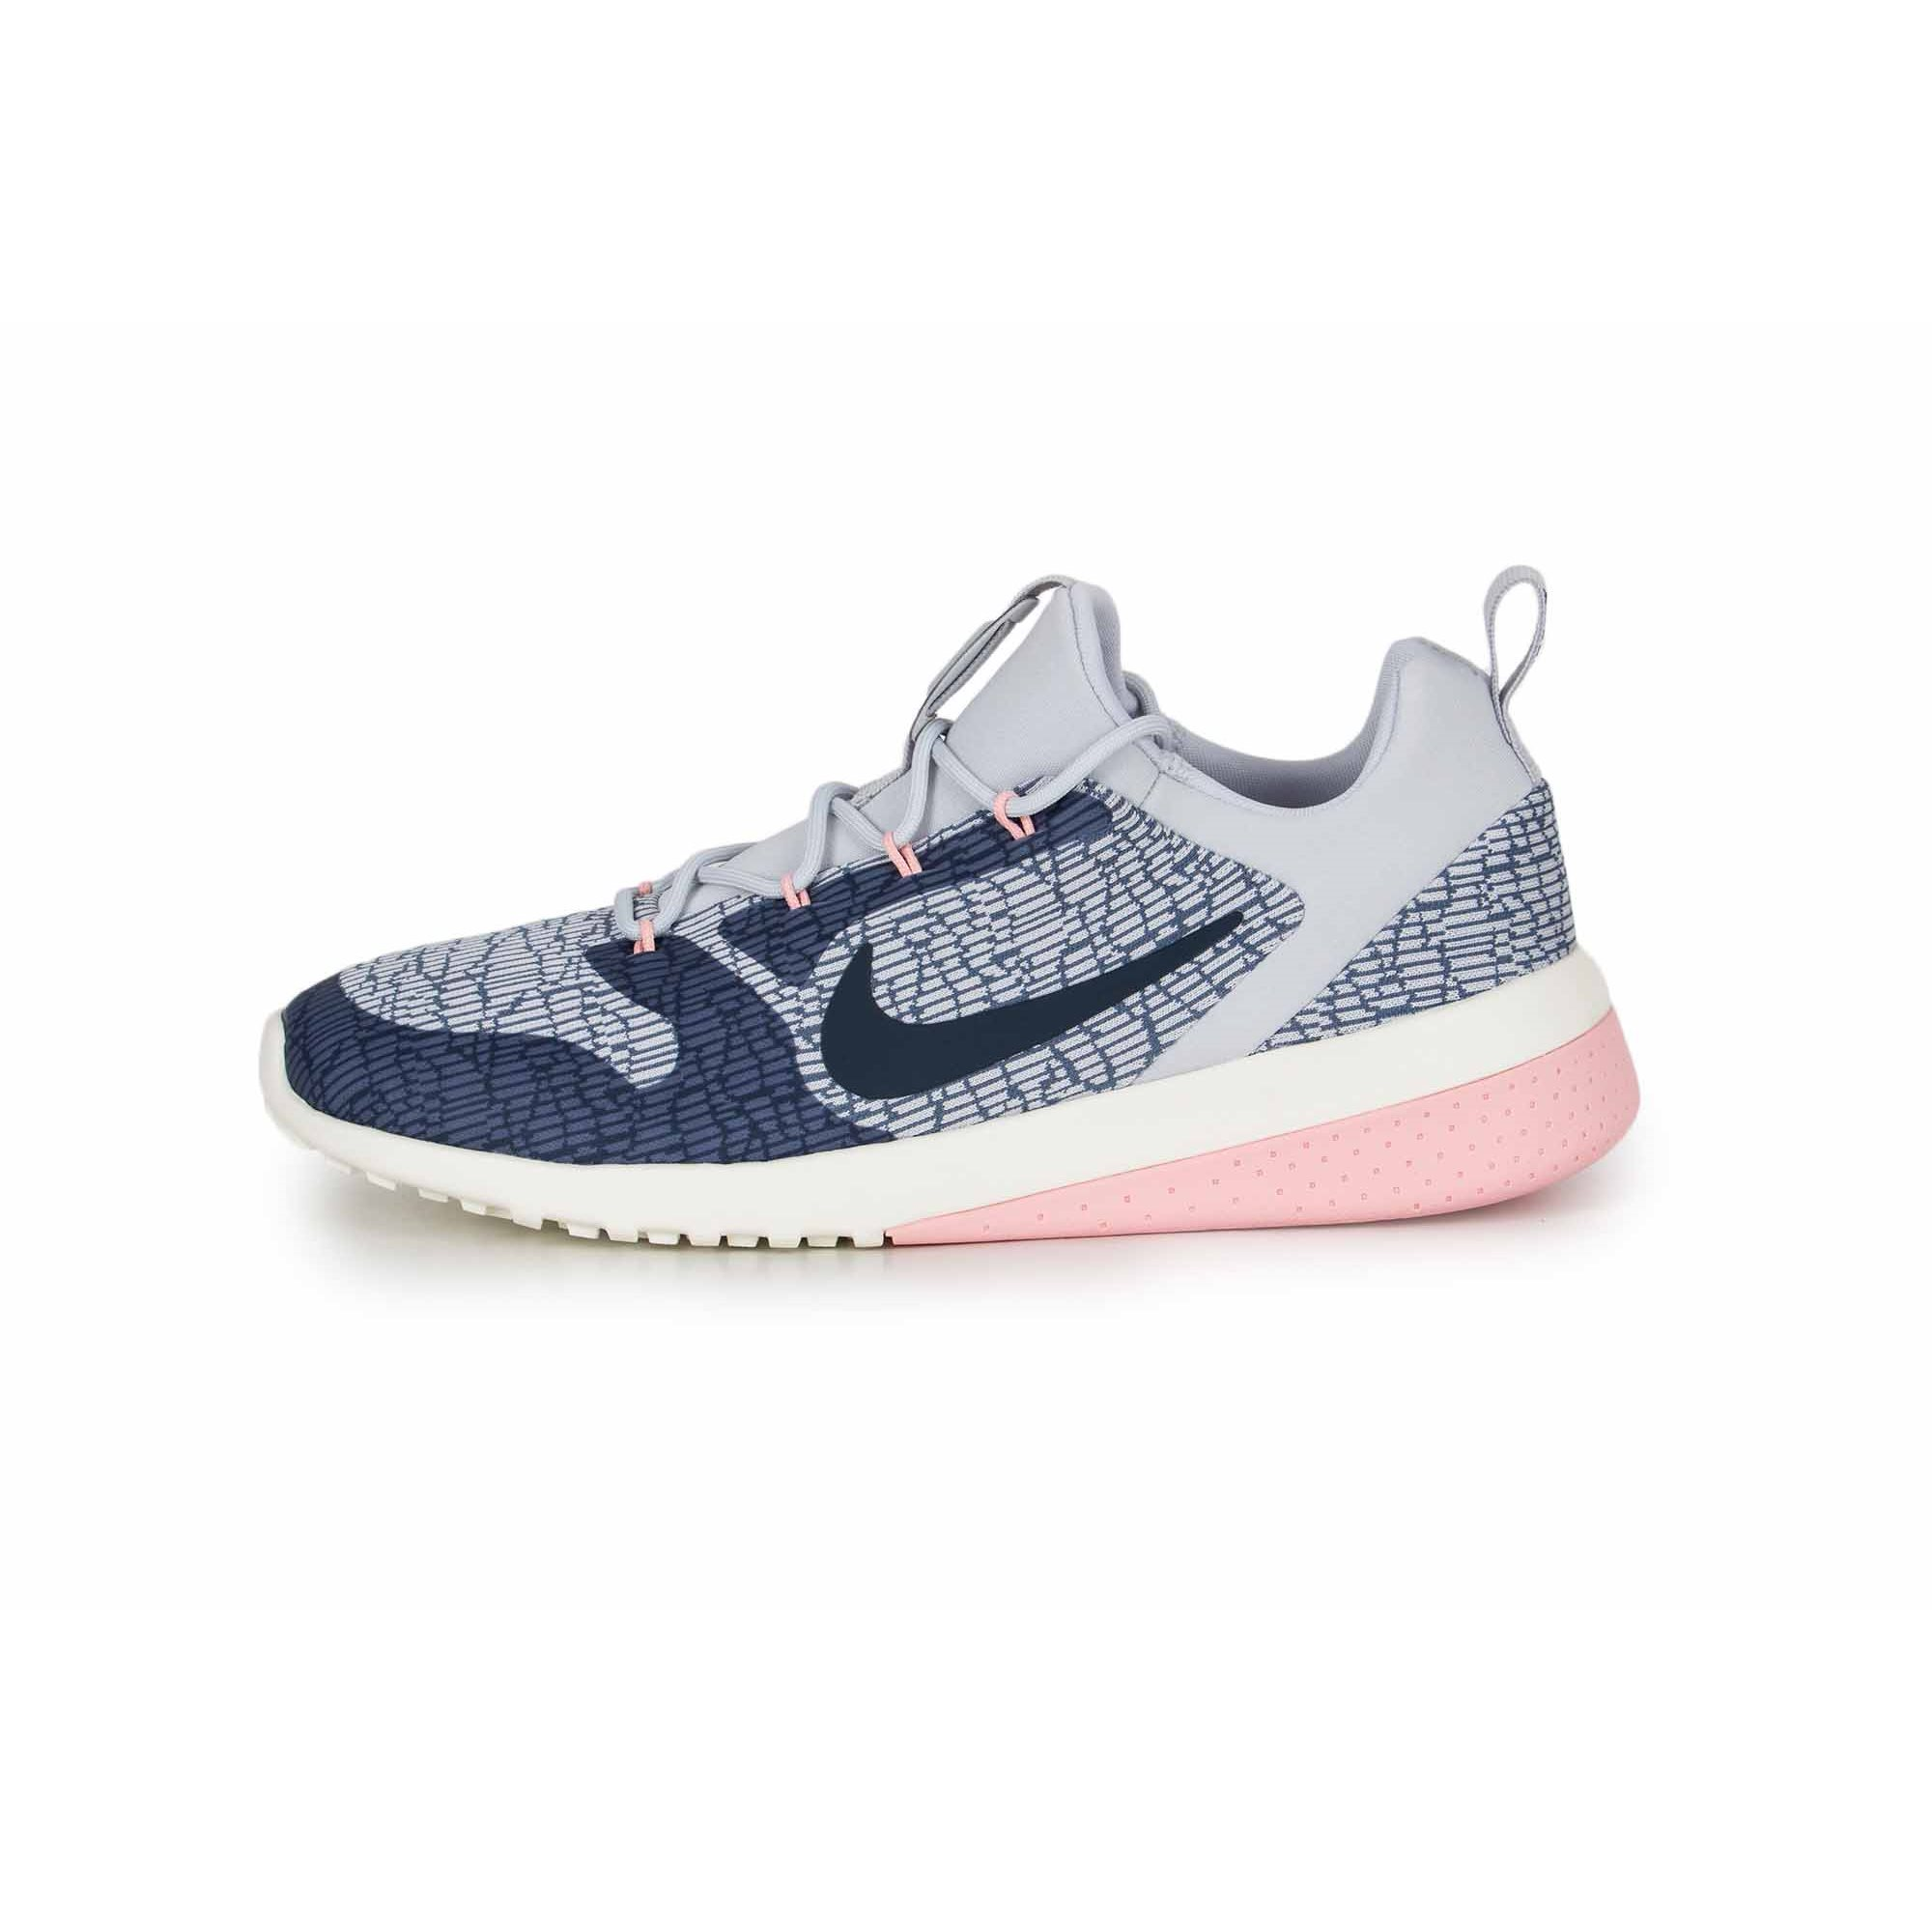 quality design 76a92 d2730 Nike Womens Ck Racer Low Top Lace Up Running Sneaker